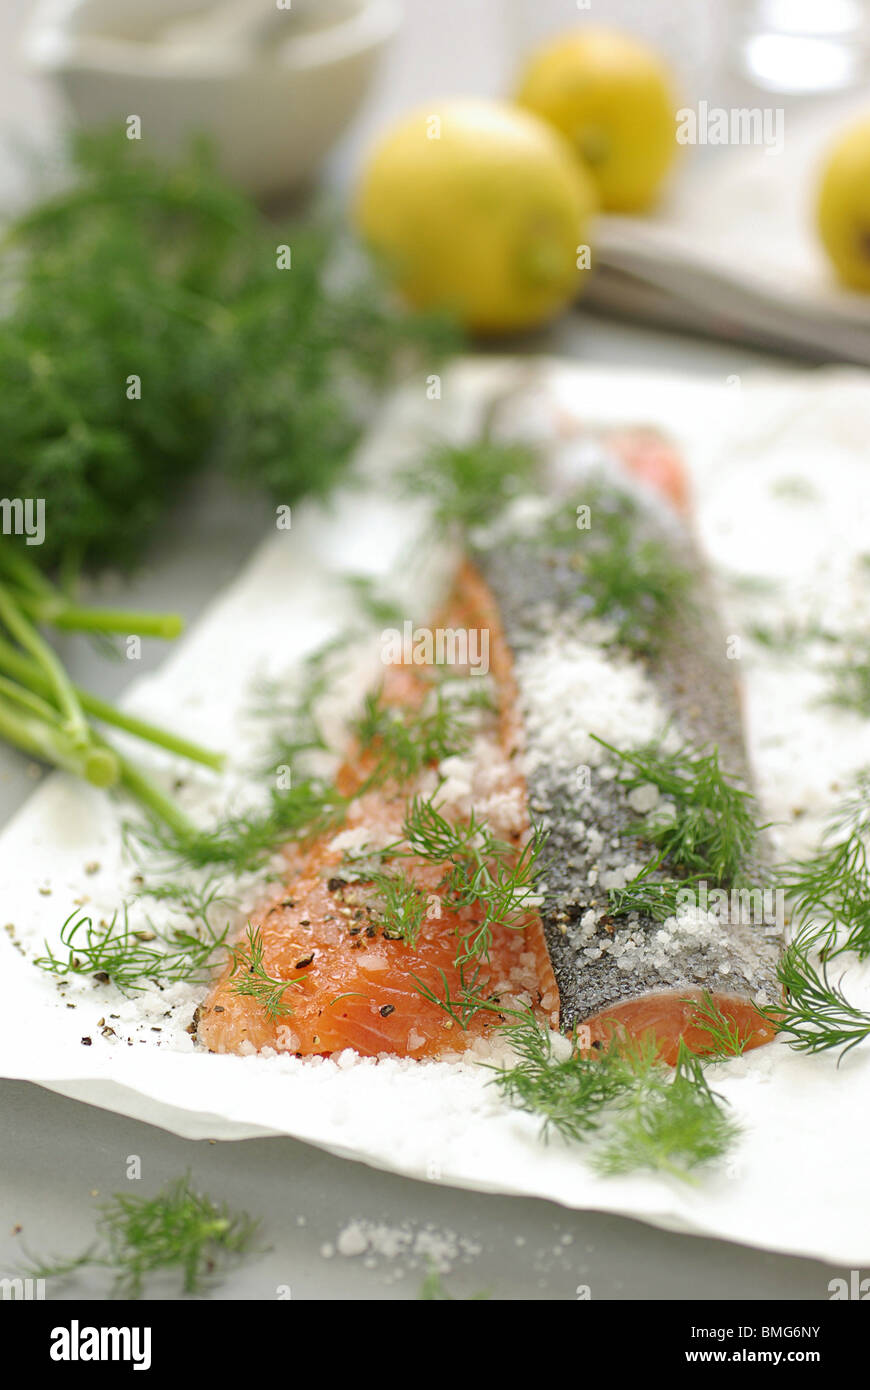 Graved Lachs With Dill And Salt - Stock Image